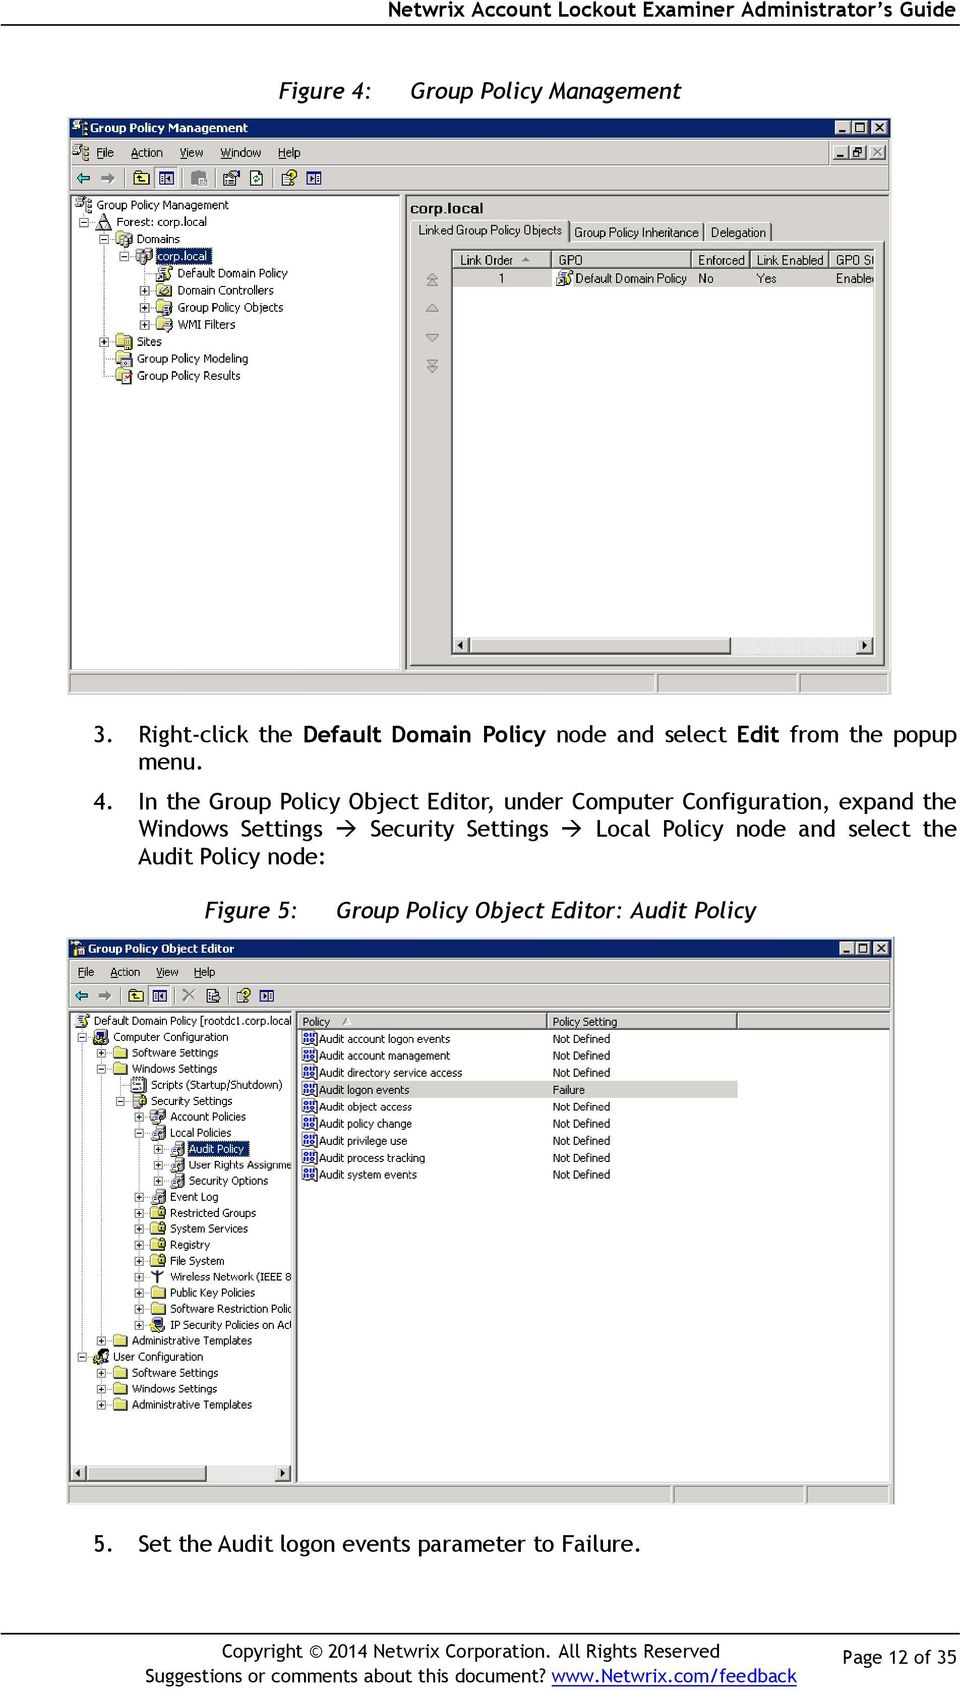 In the Group Policy Object Editor, under Computer Configuration, expand the Windows Settings